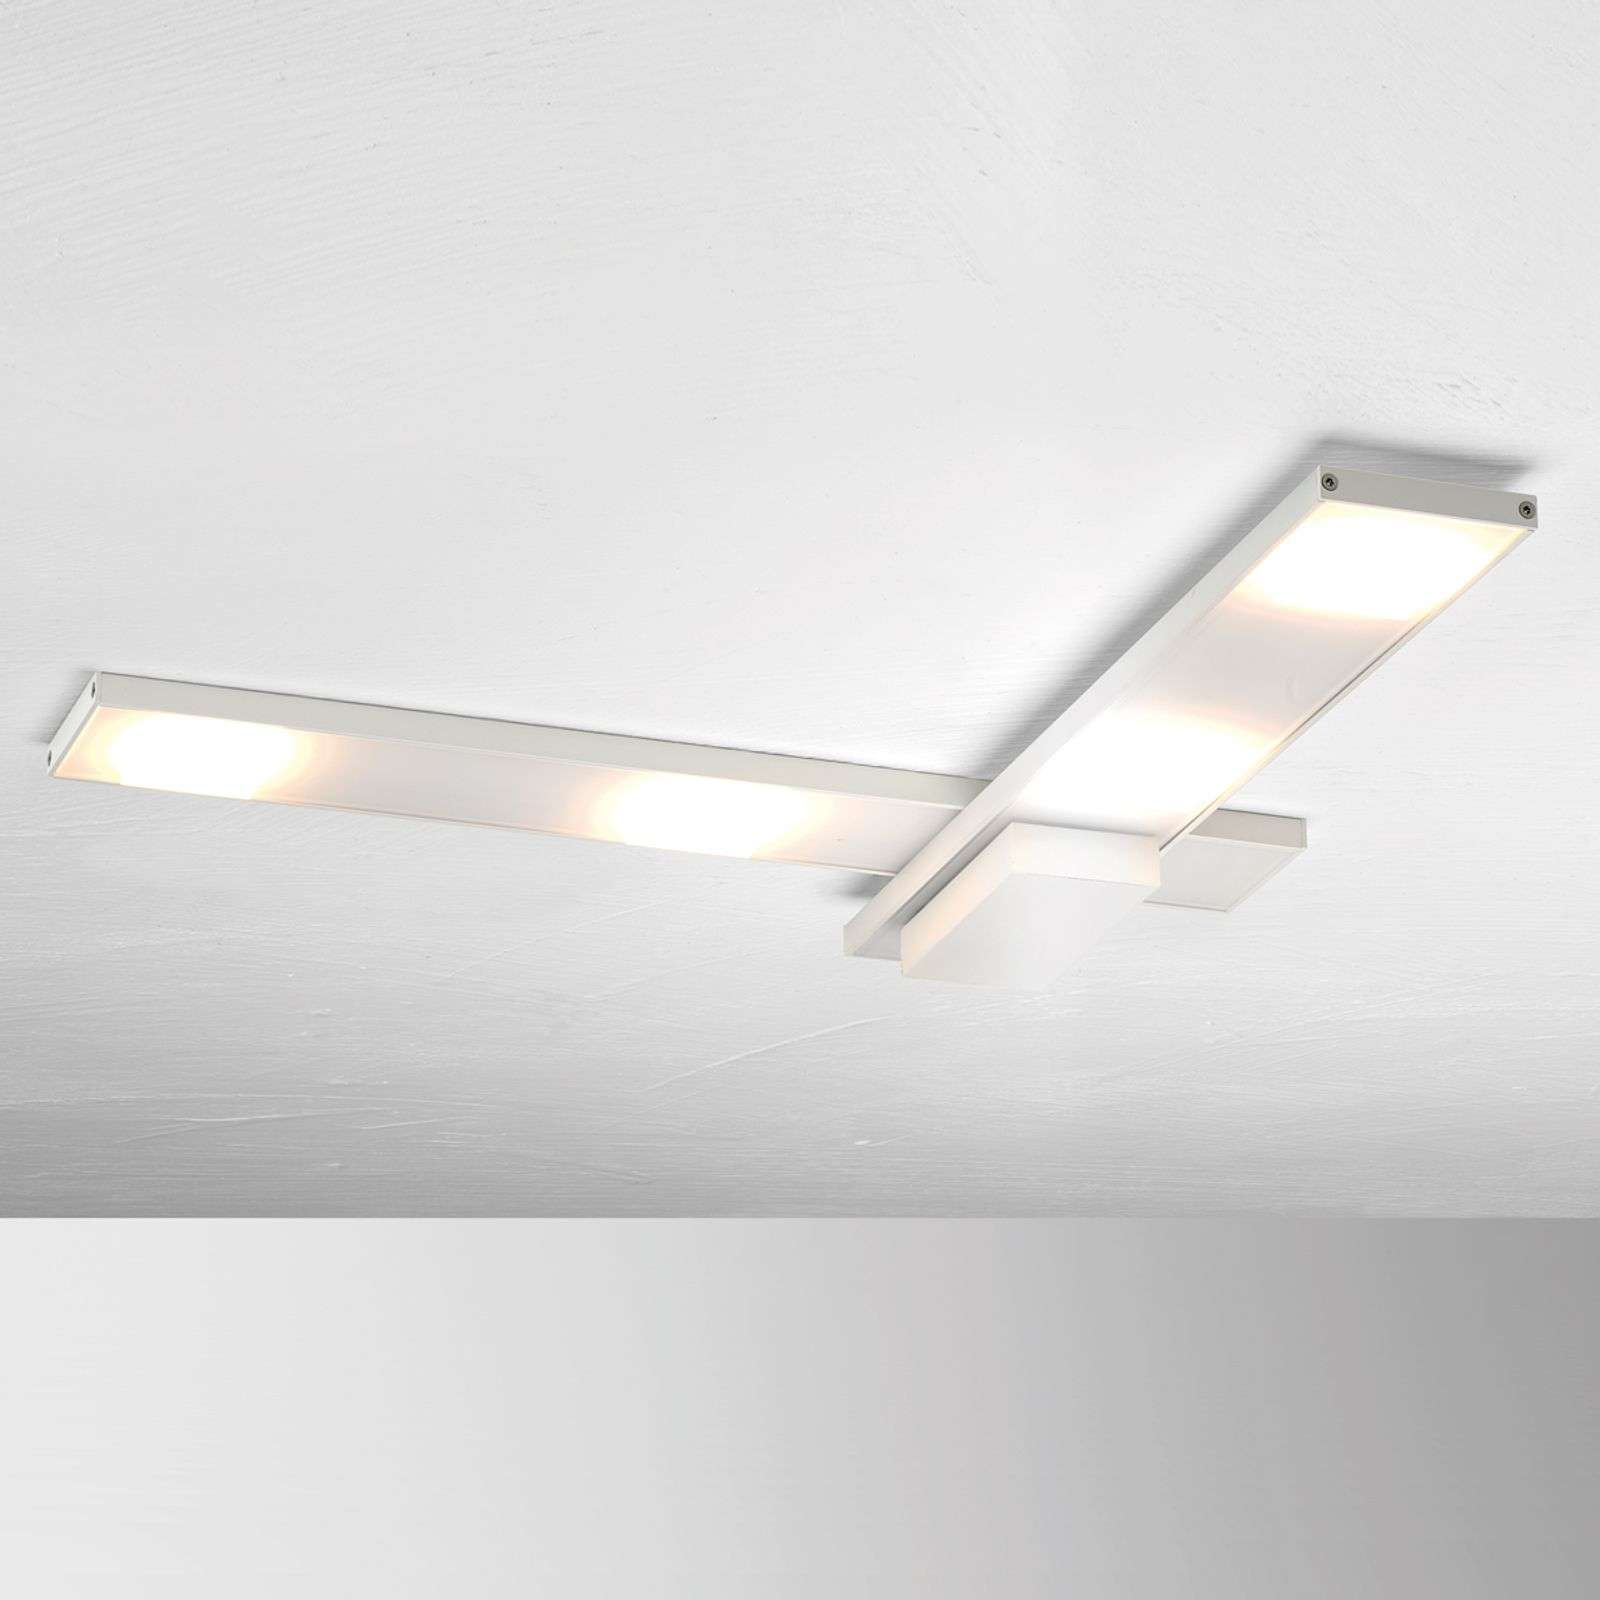 Plafonnier LED raffiné Slight, blanc